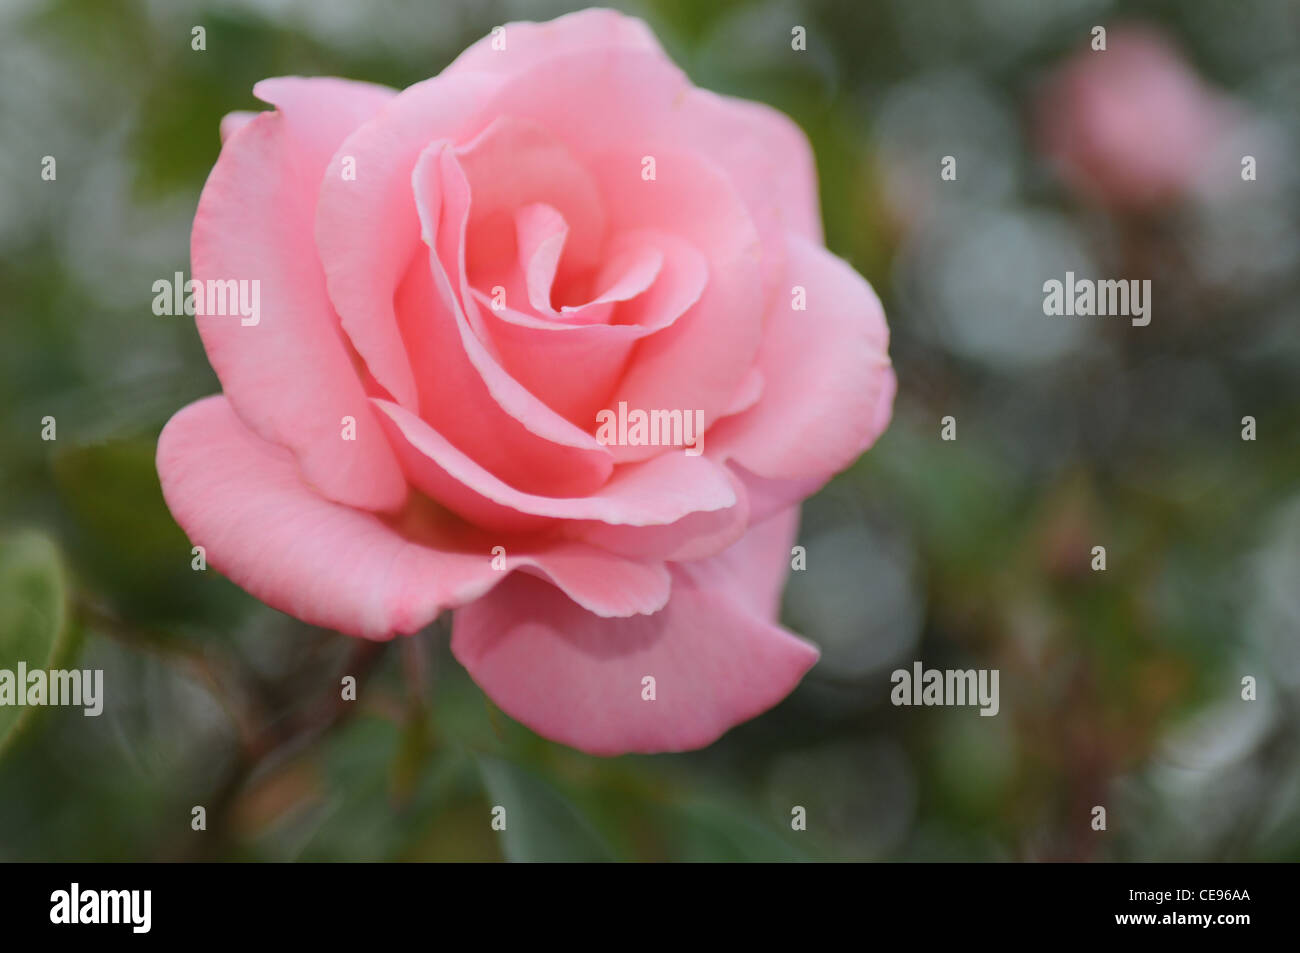 Low depth of field photograph of a flower - Stock Image